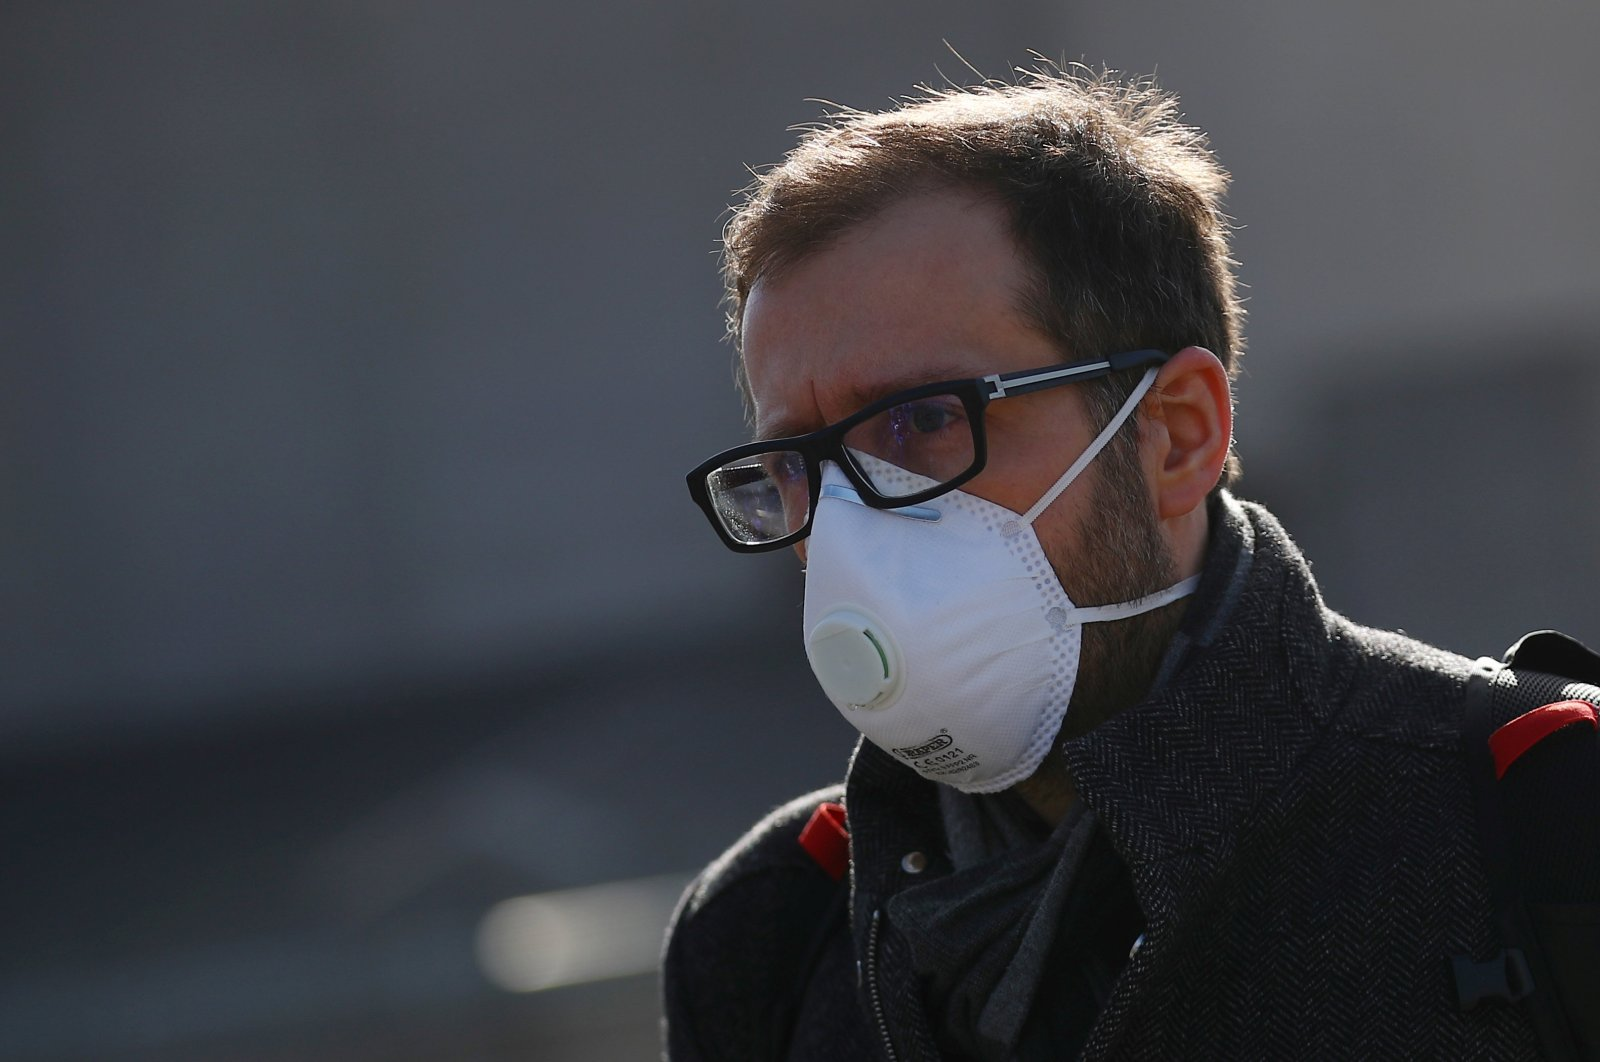 A man wearing a protective mask walks across Waterloo Bridge during rush hour, as the number of coronavirus cases grow around the world, in London, Britain, March 17, 2020. (Reuters Photo)